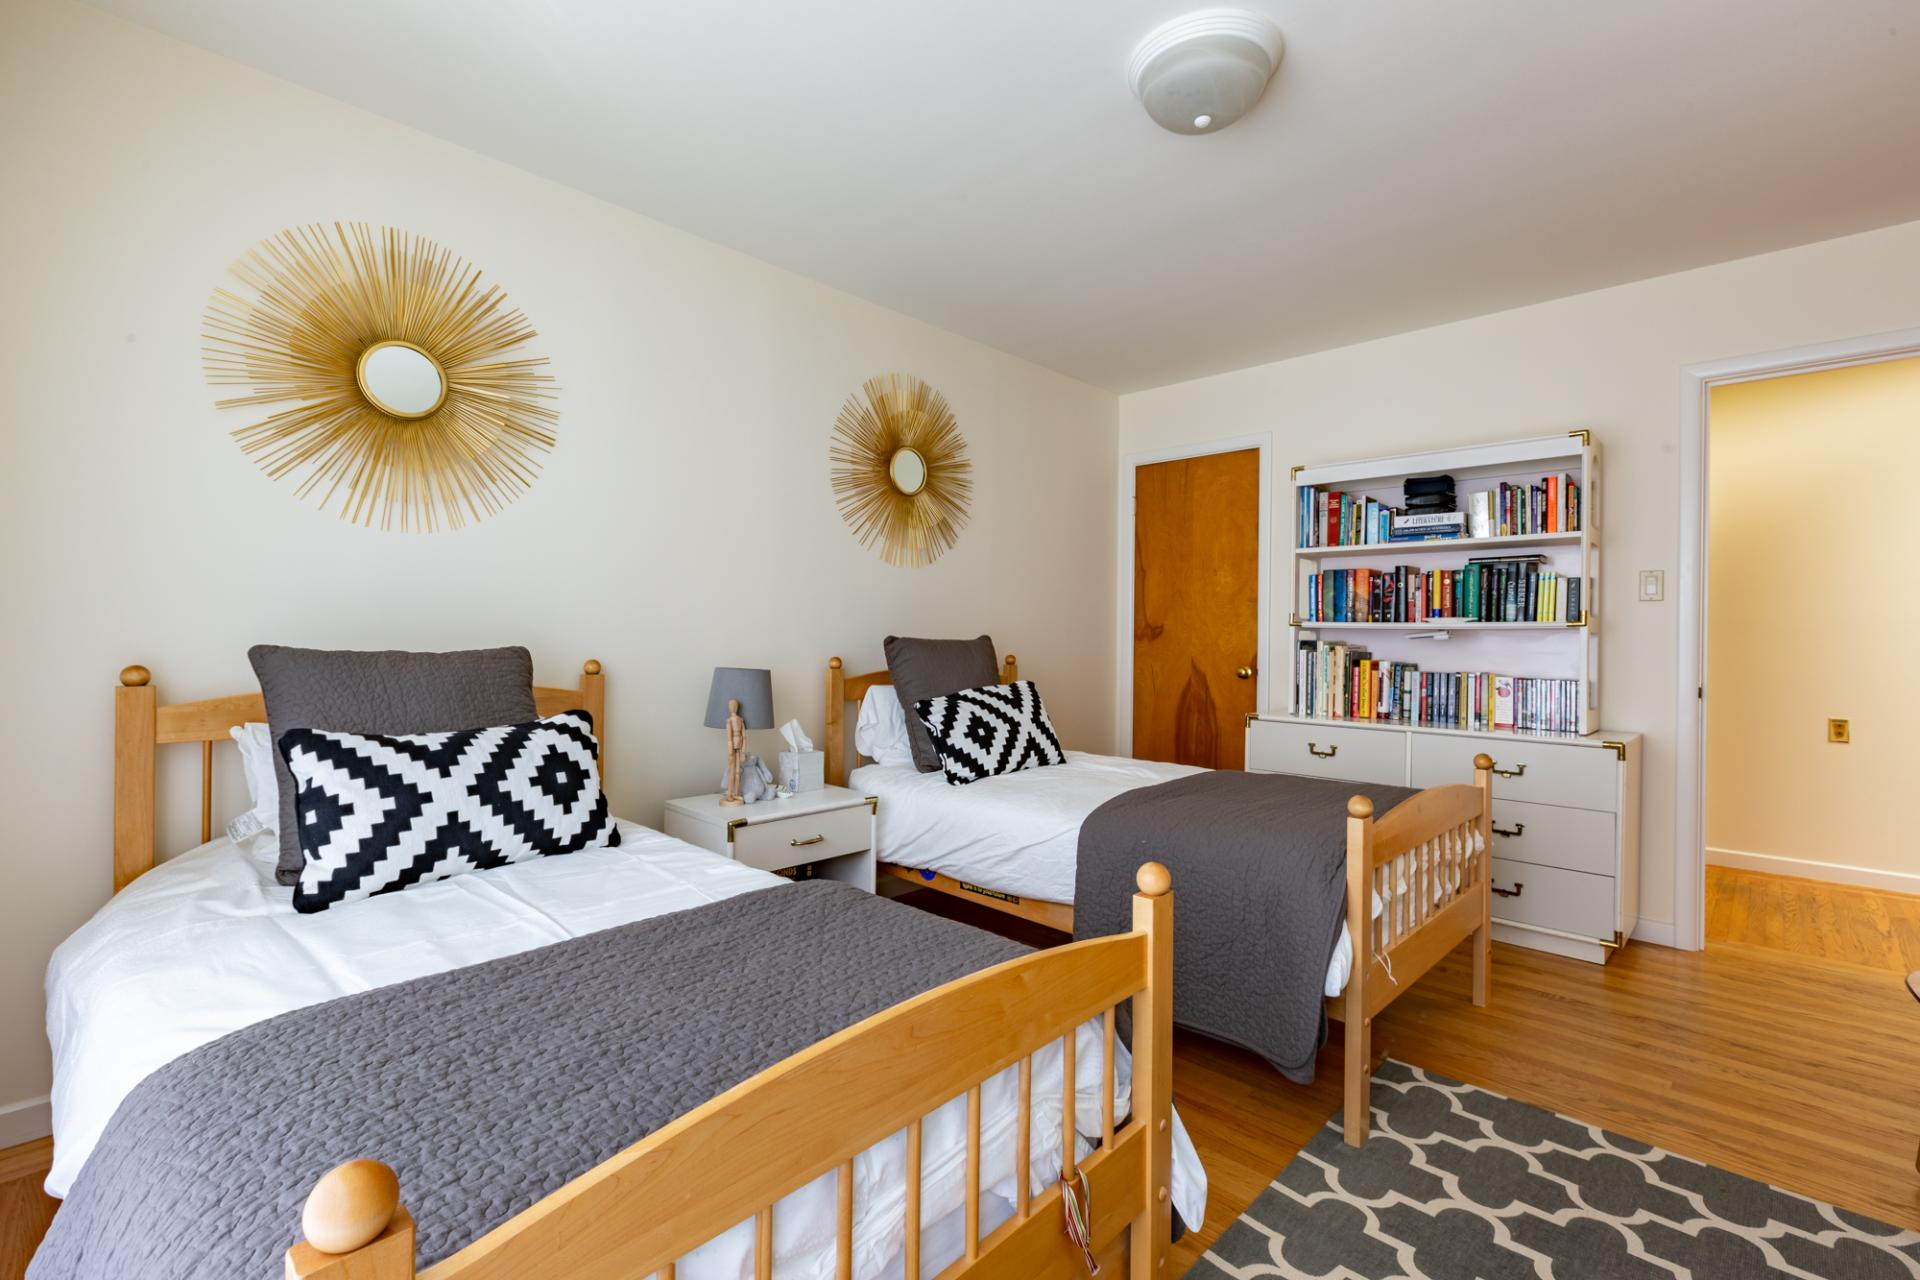 Beds at Leavenworth Street Apartment, Russian Hill, San Francisco